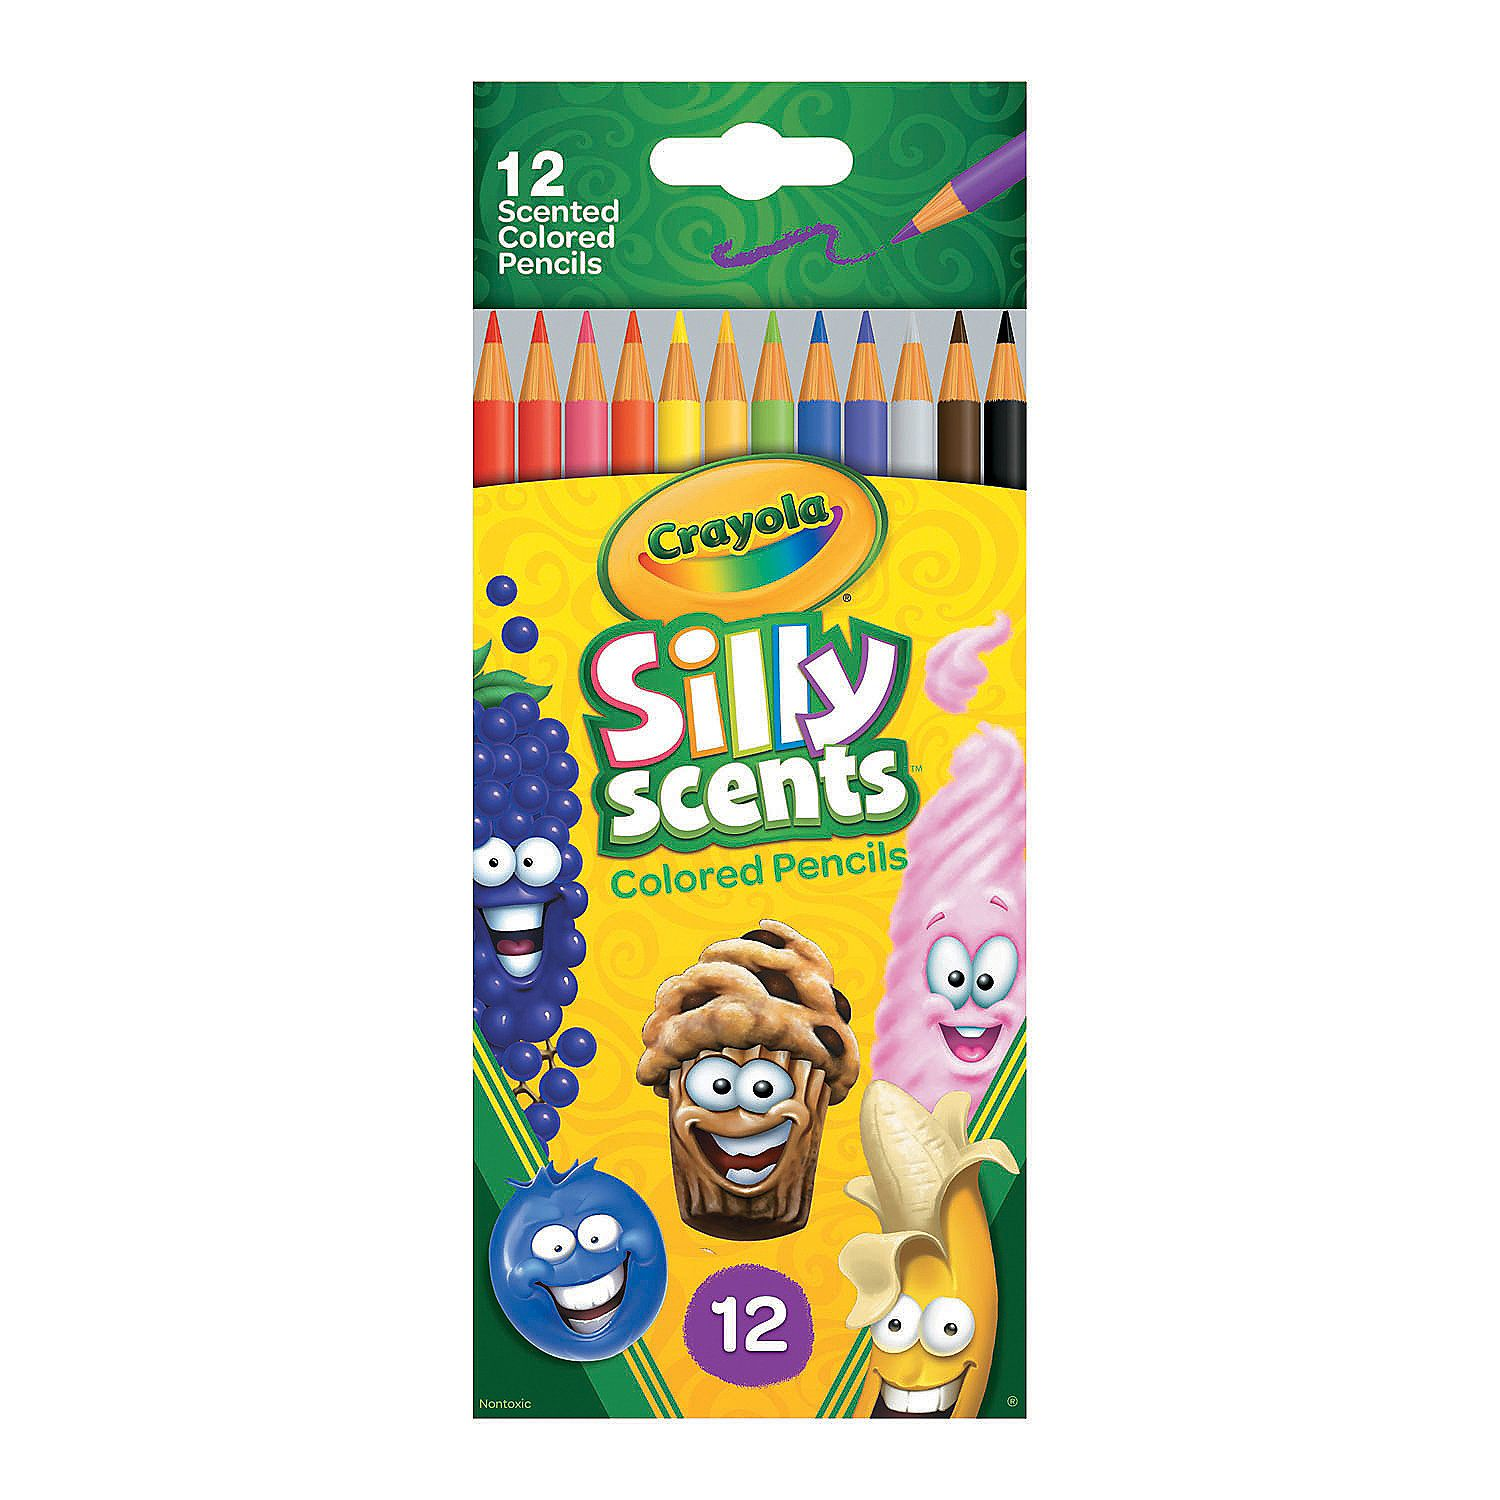 20++ Printable crayola silly scents coloring pages ideas in 2021